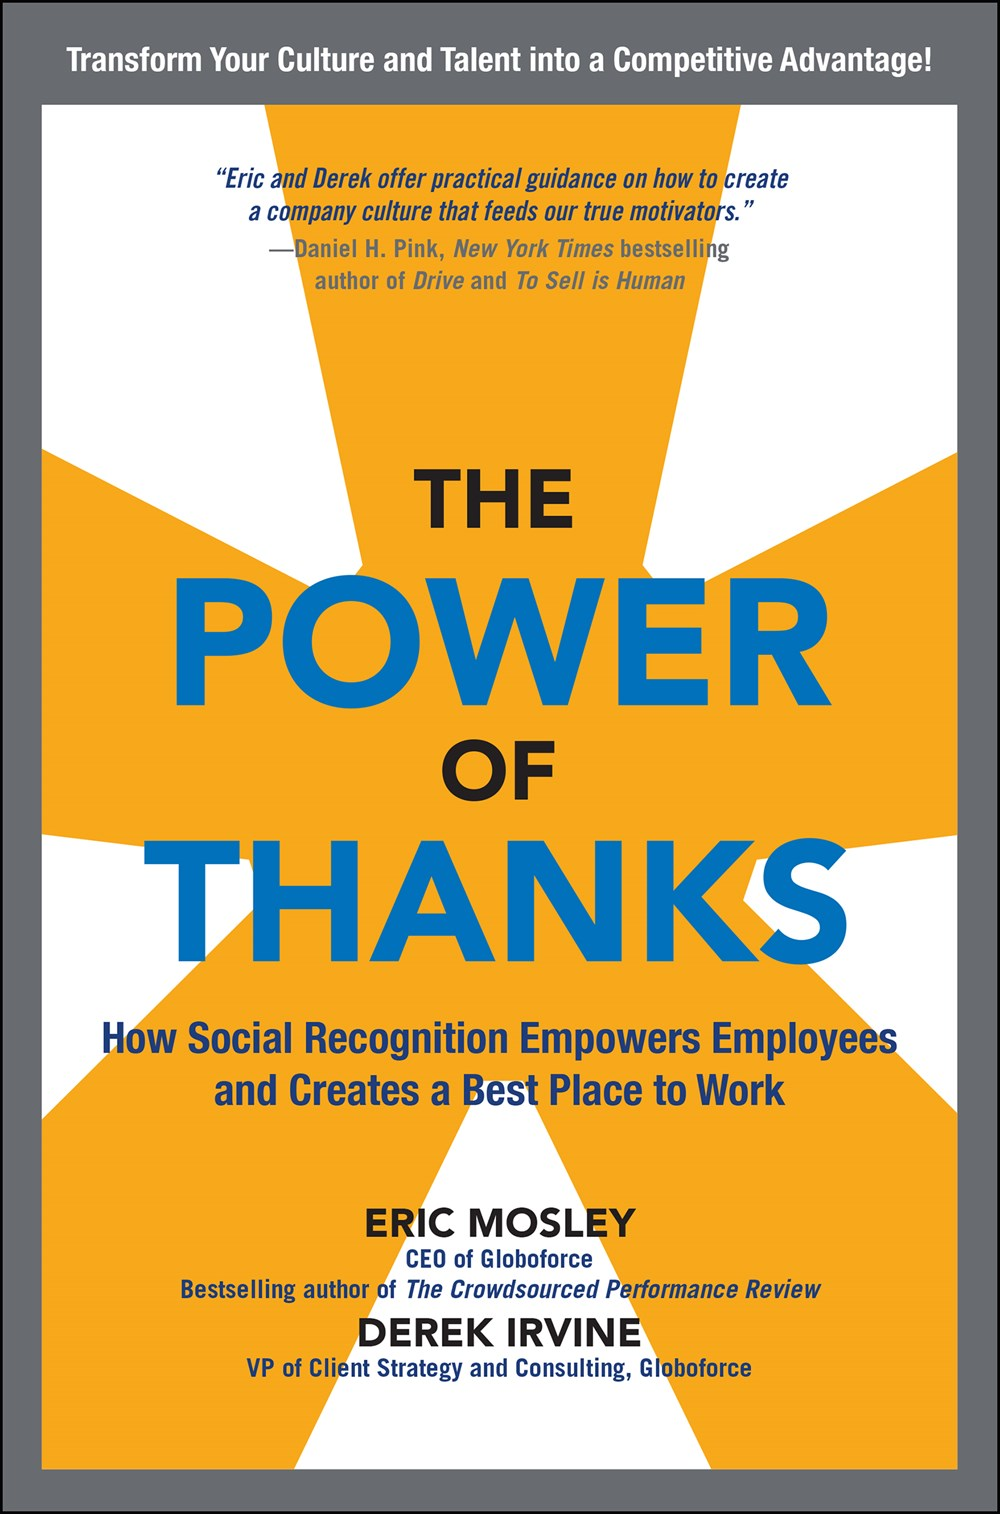 Power of Thanks How Social Recognition Empowers Employees and Creates a Best Place to Work